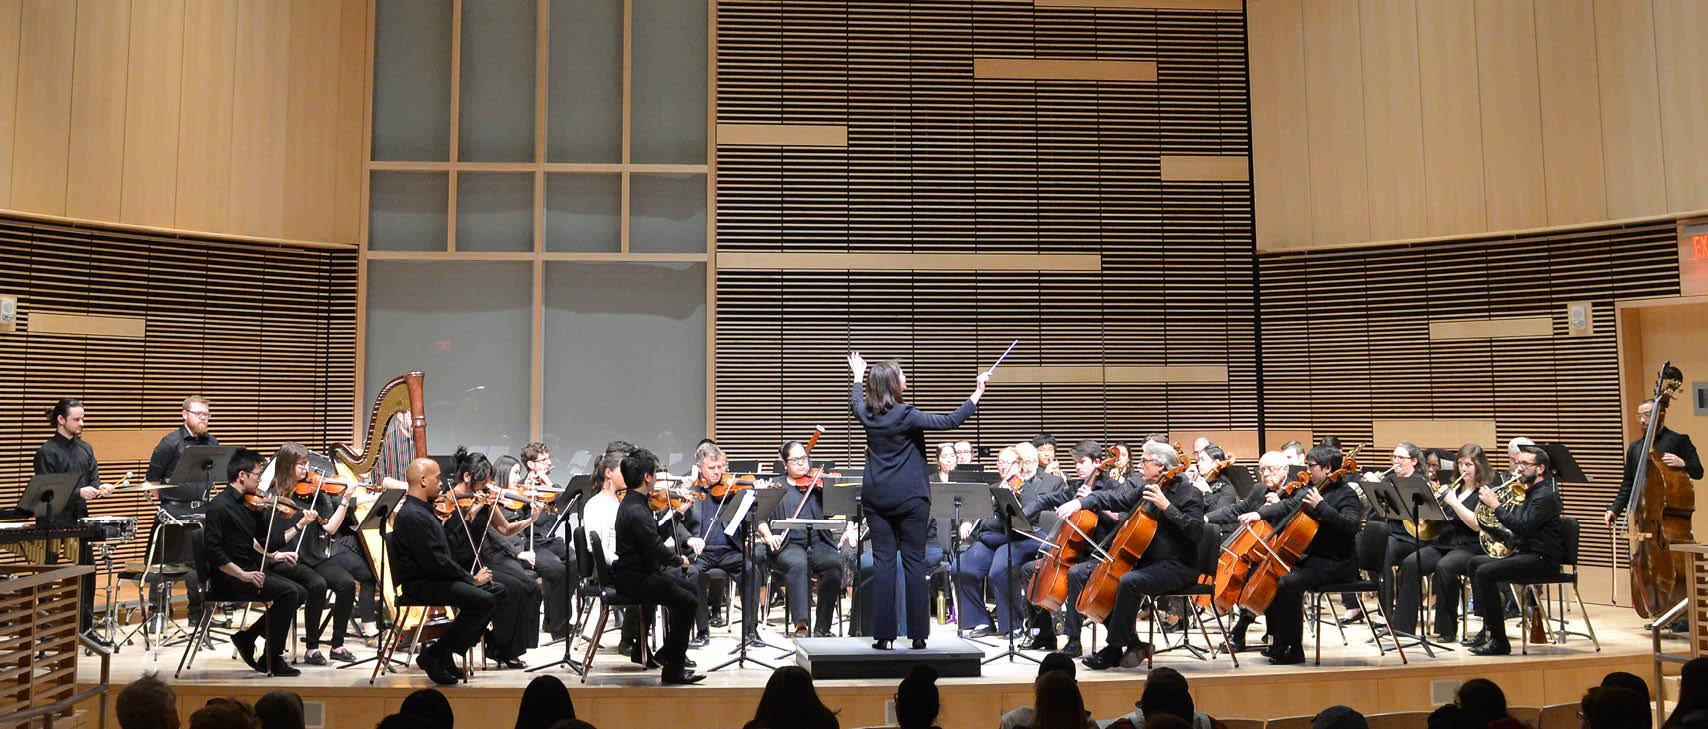 UMass Boston Chamber Orchestra